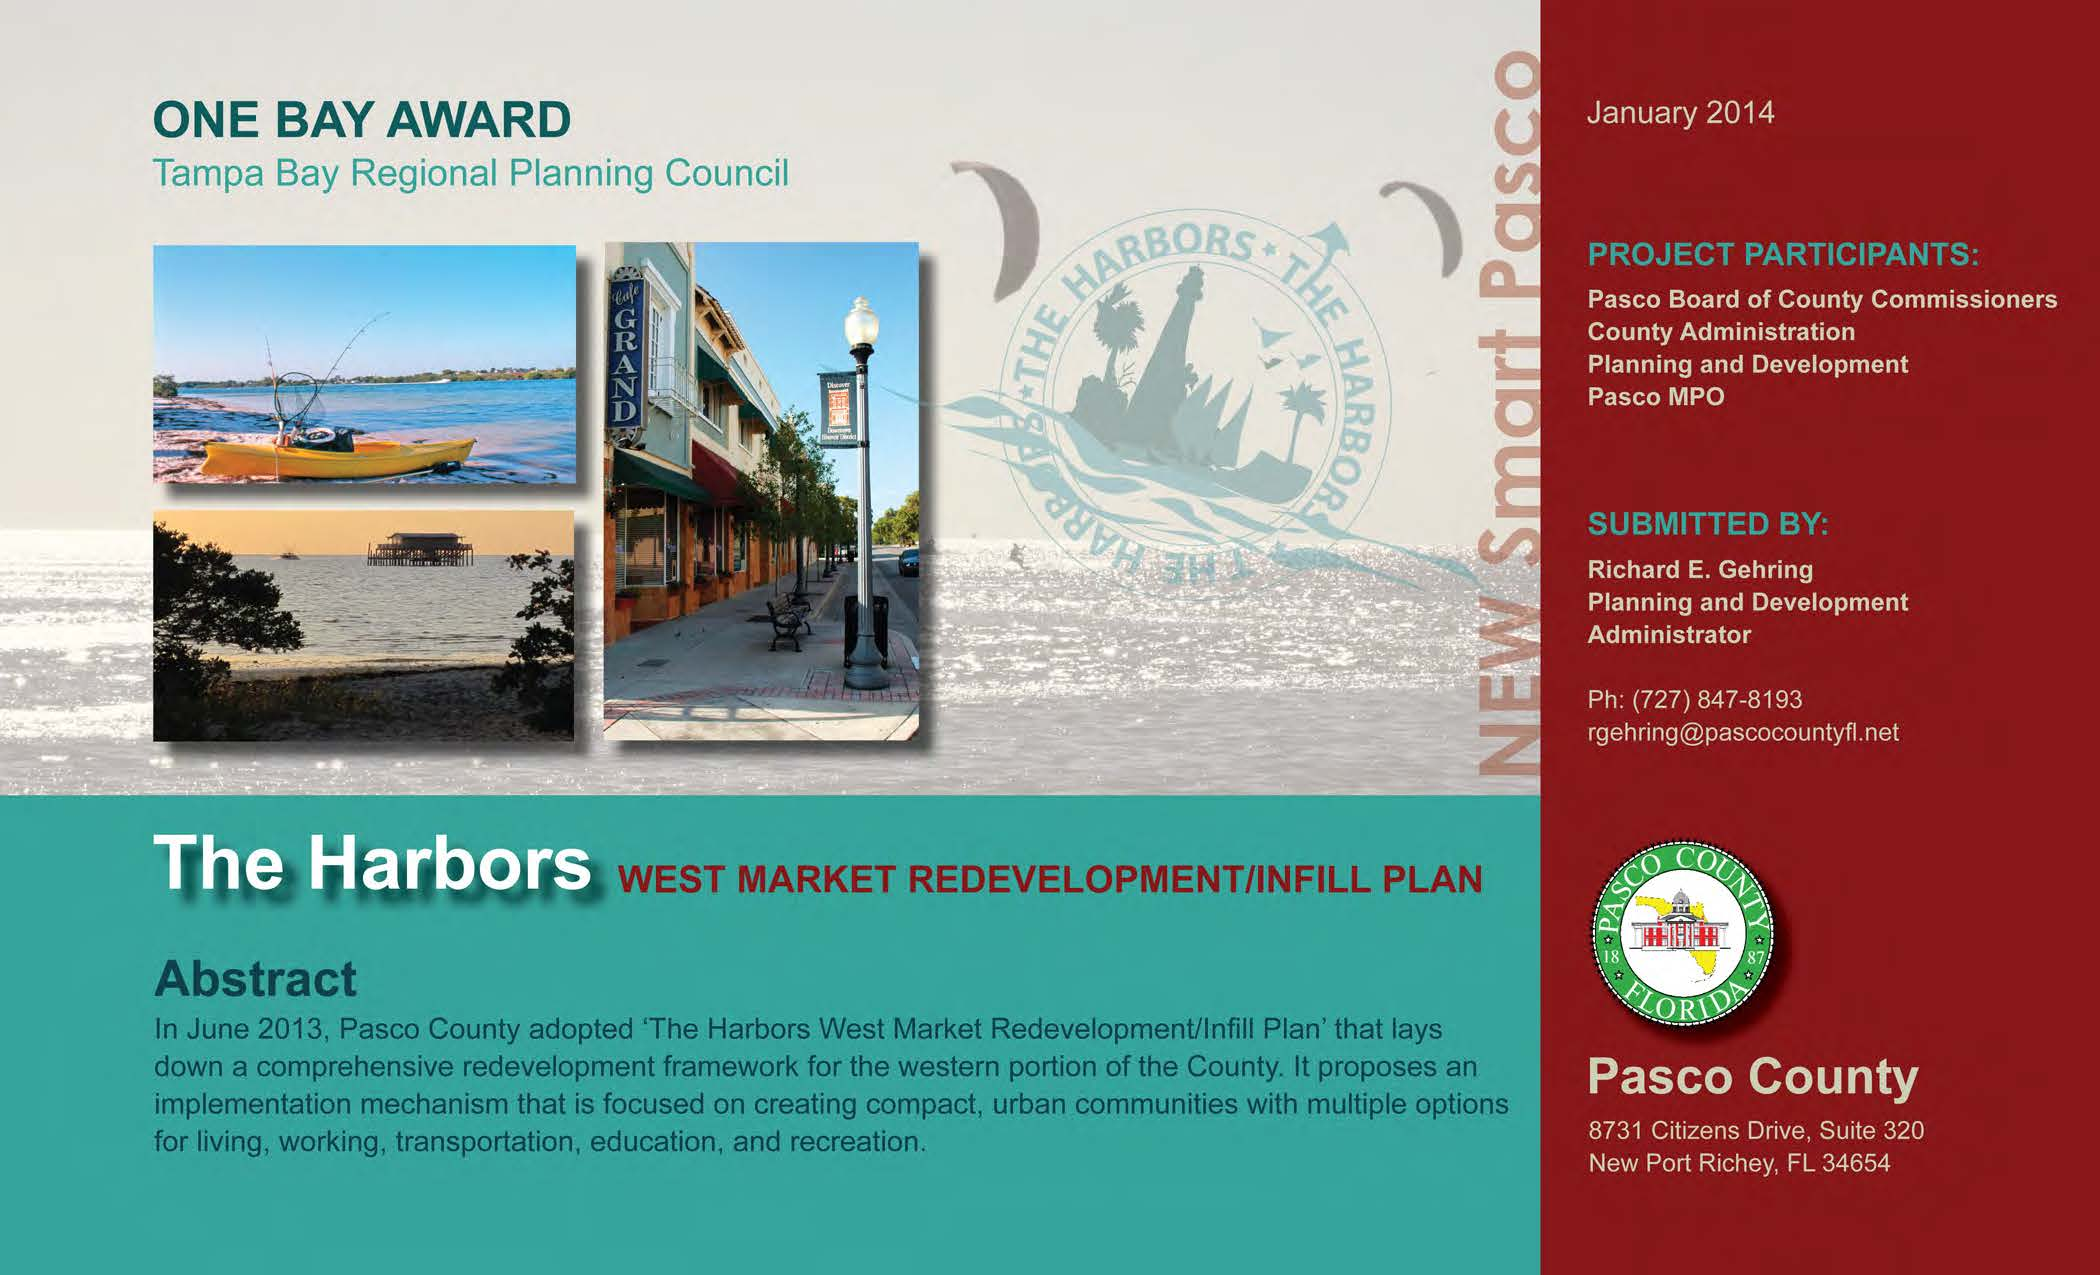 The Harbors West Market Redevelopment / Infill Plan